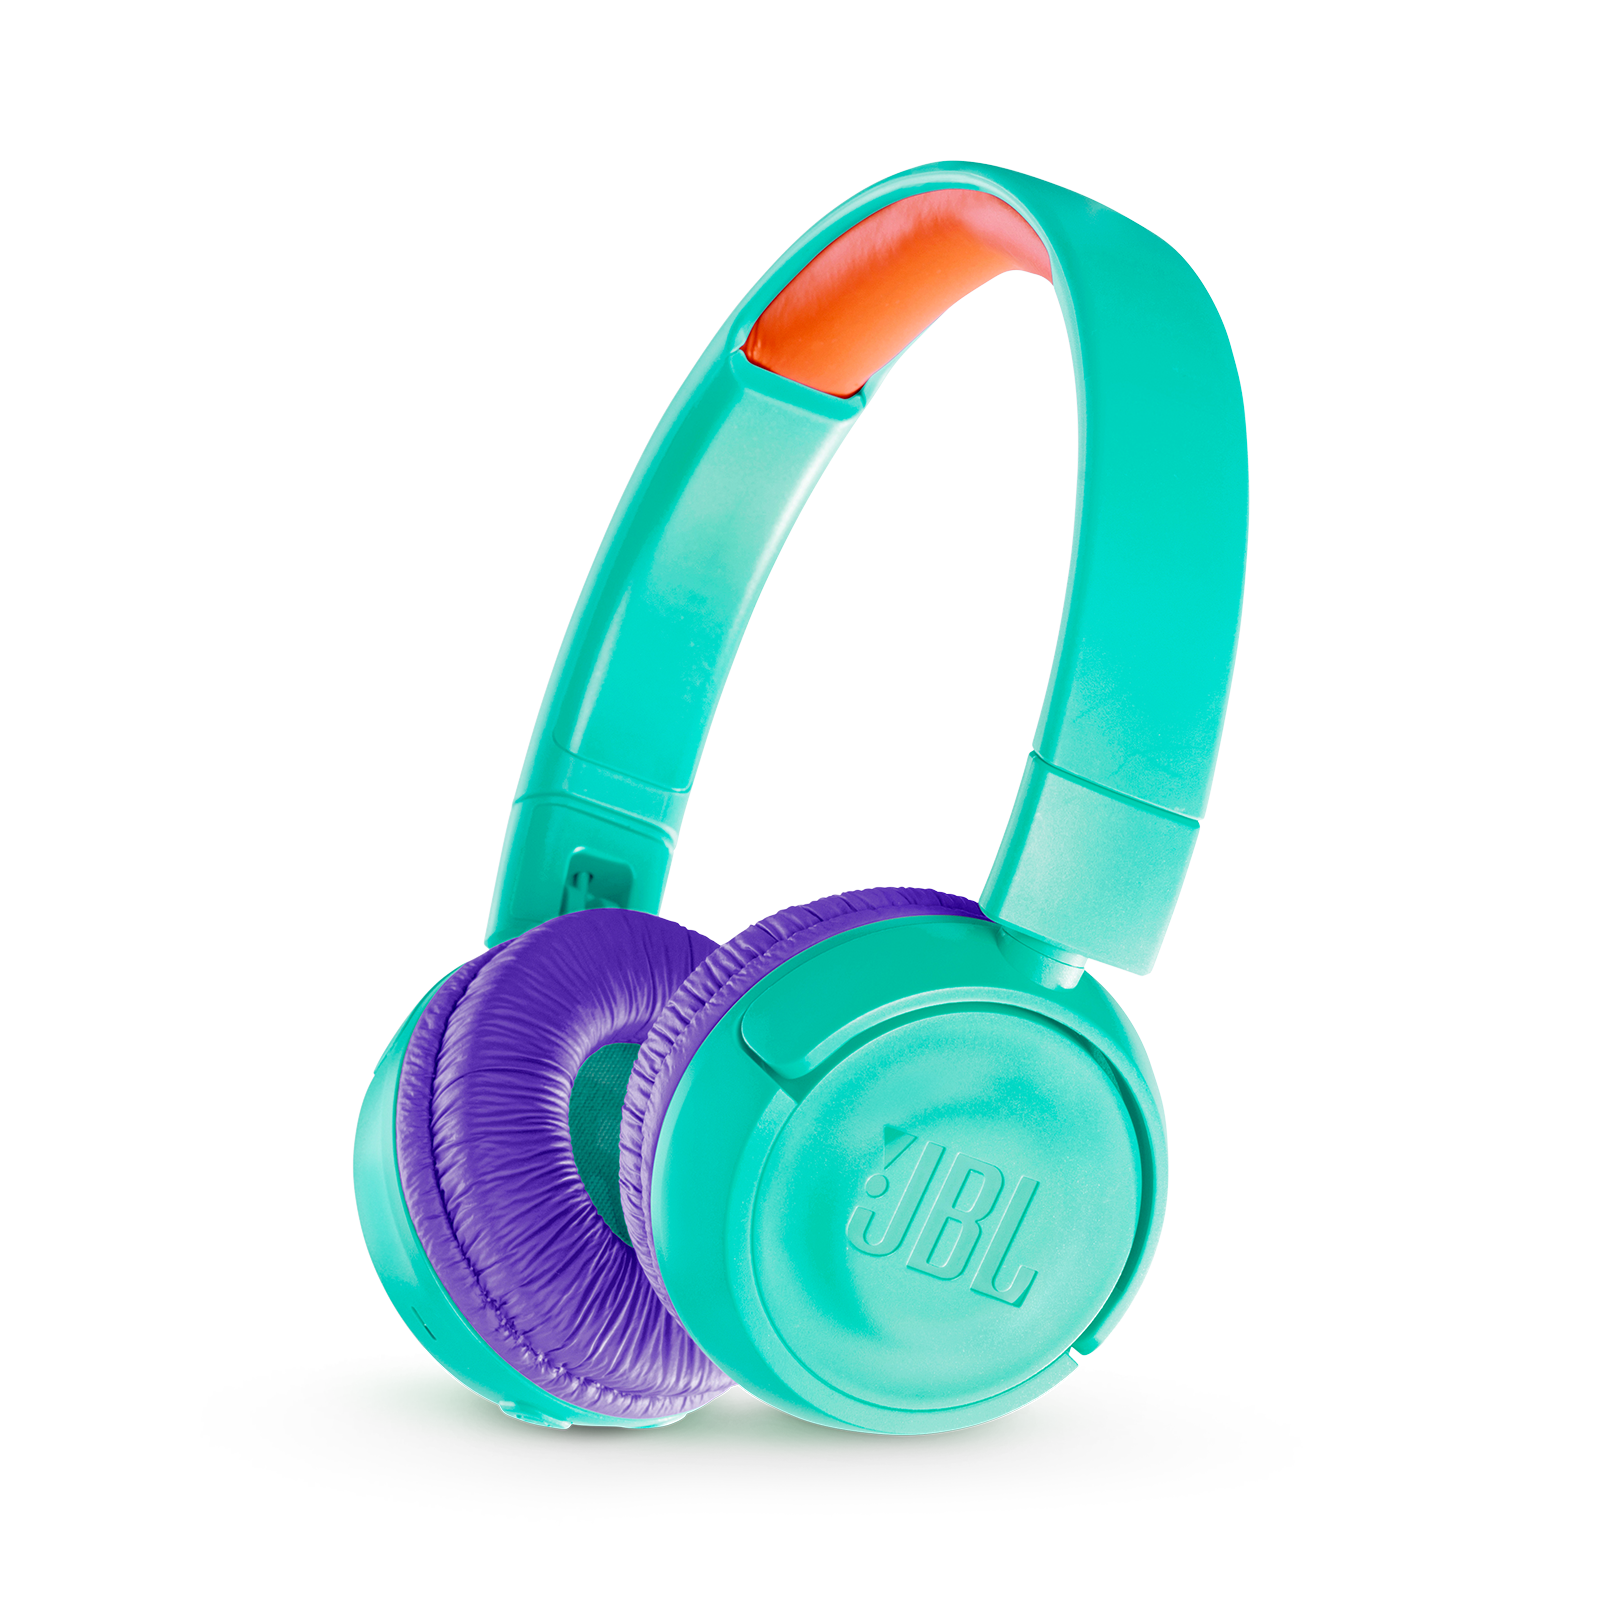 JBL introduces kid-friendly quality headphones in the Philippines